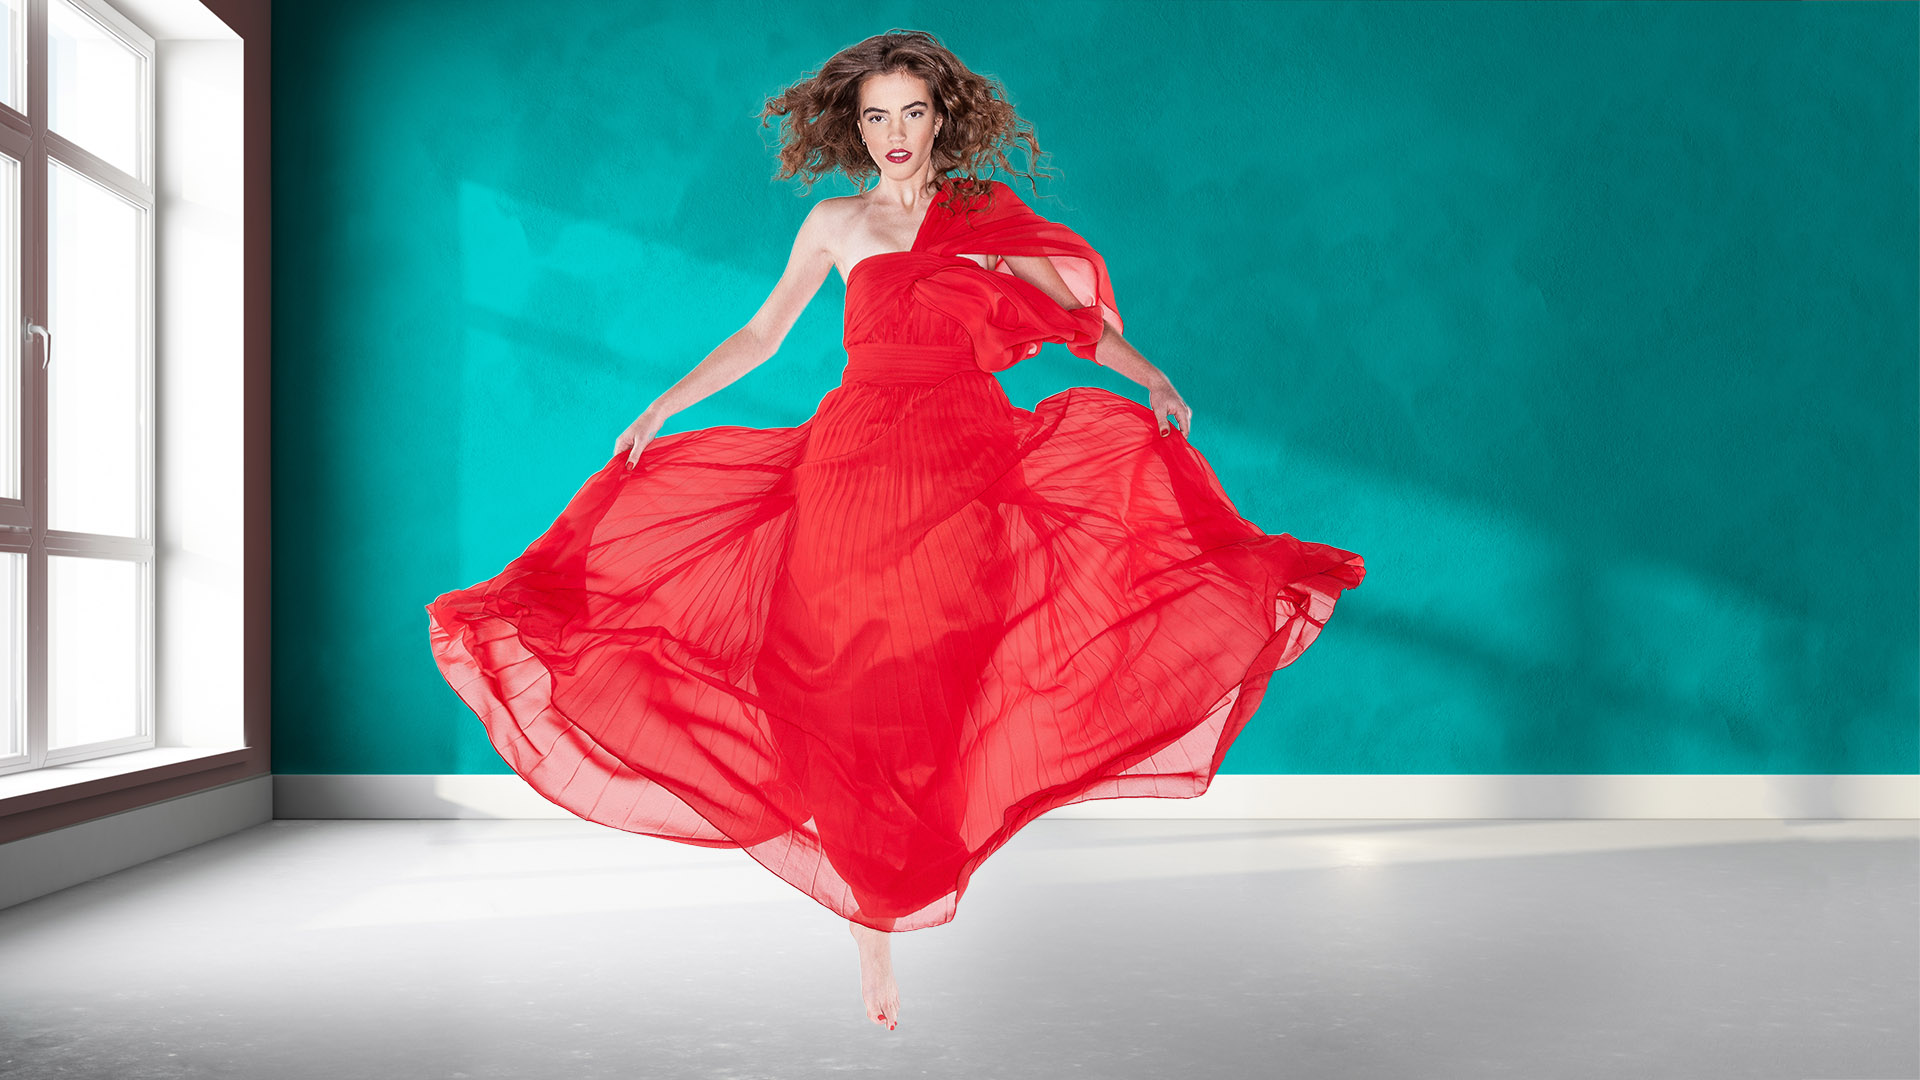 Amy Patterson wearing a red dress jumping in a daylit room with a cyan wall. Amy's photo by Kevin Ames